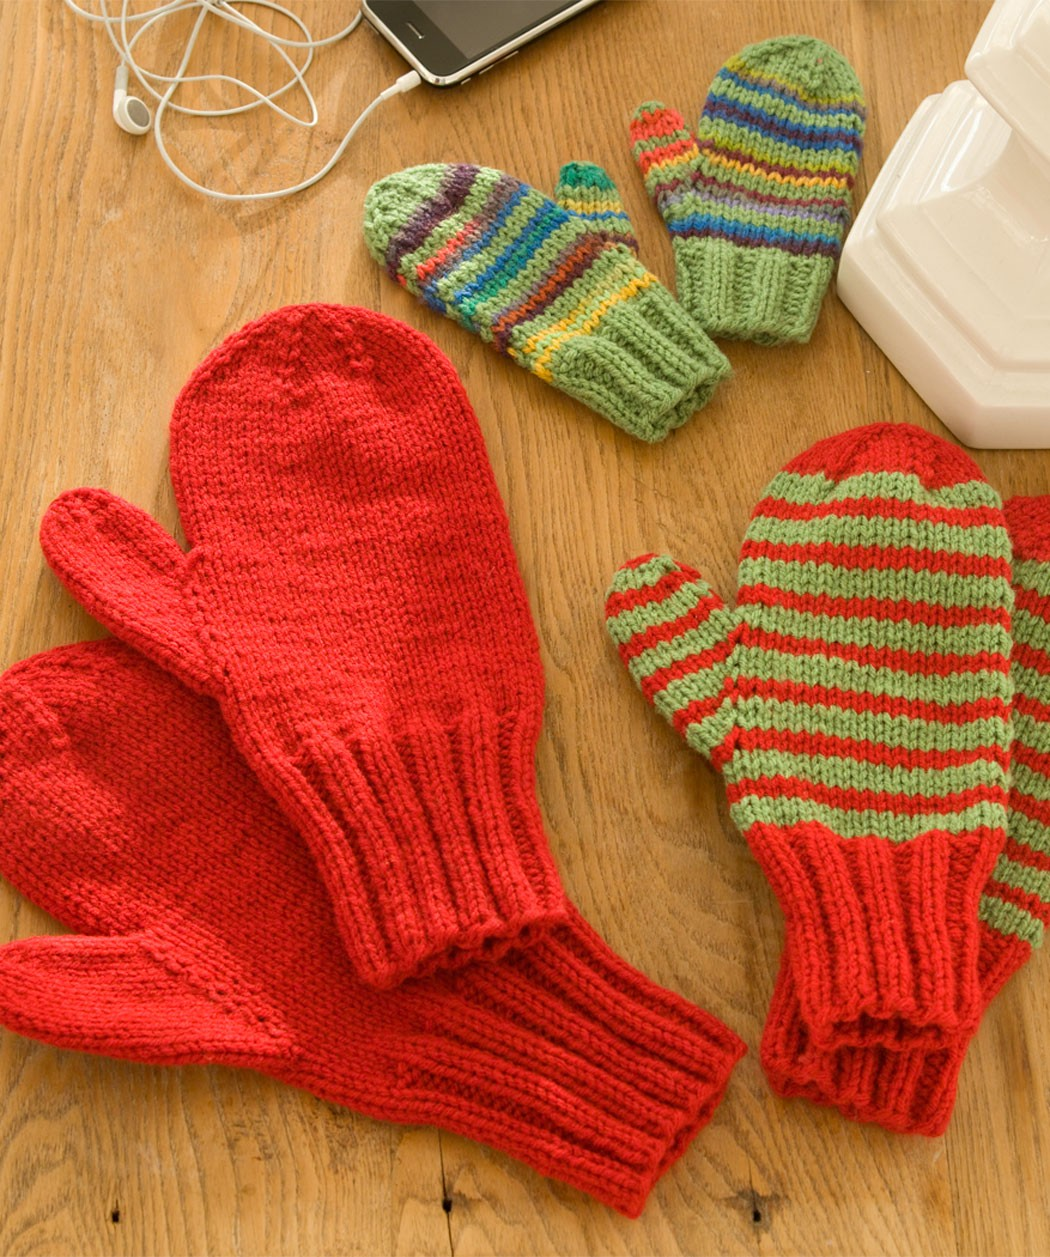 Knitting Pattern Mittens : Mitten Knitting Patterns A Knitting Blog